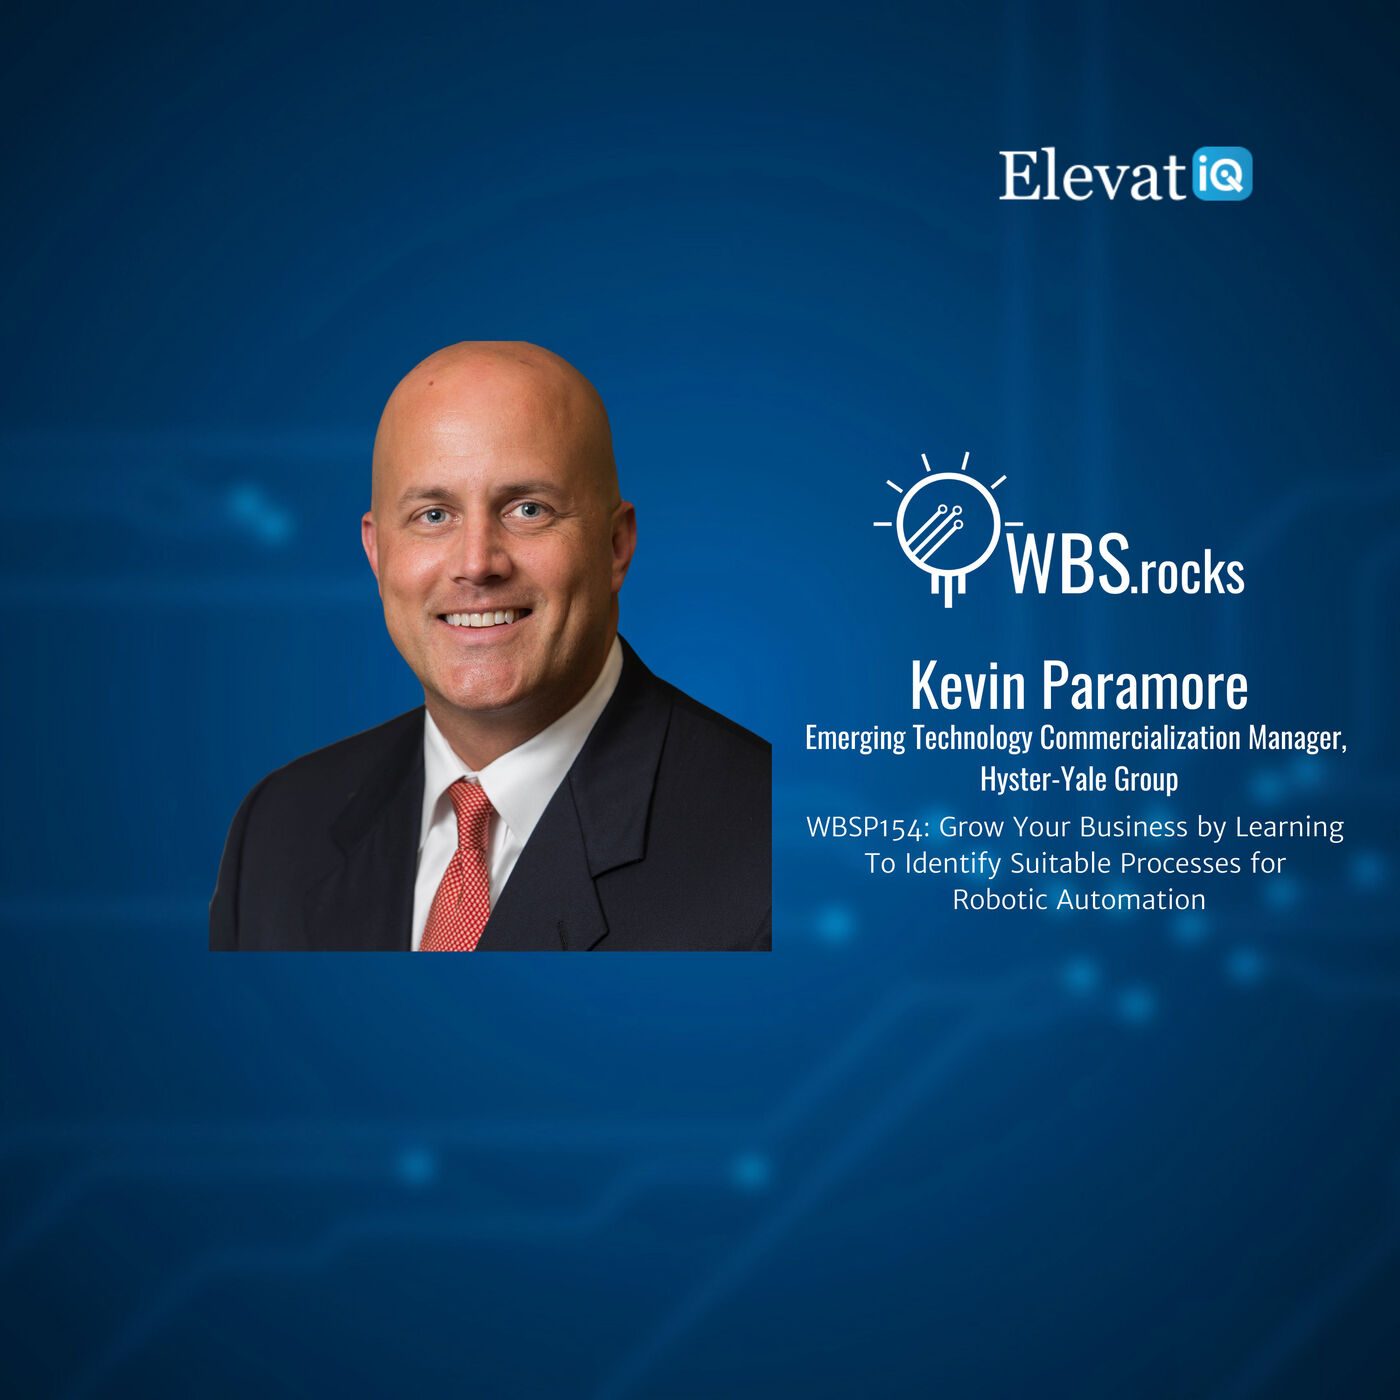 WBSP154: Grow Your Business by Learning To Identify Suitable Processes for Robotic Automation w/ Kevin Paramore